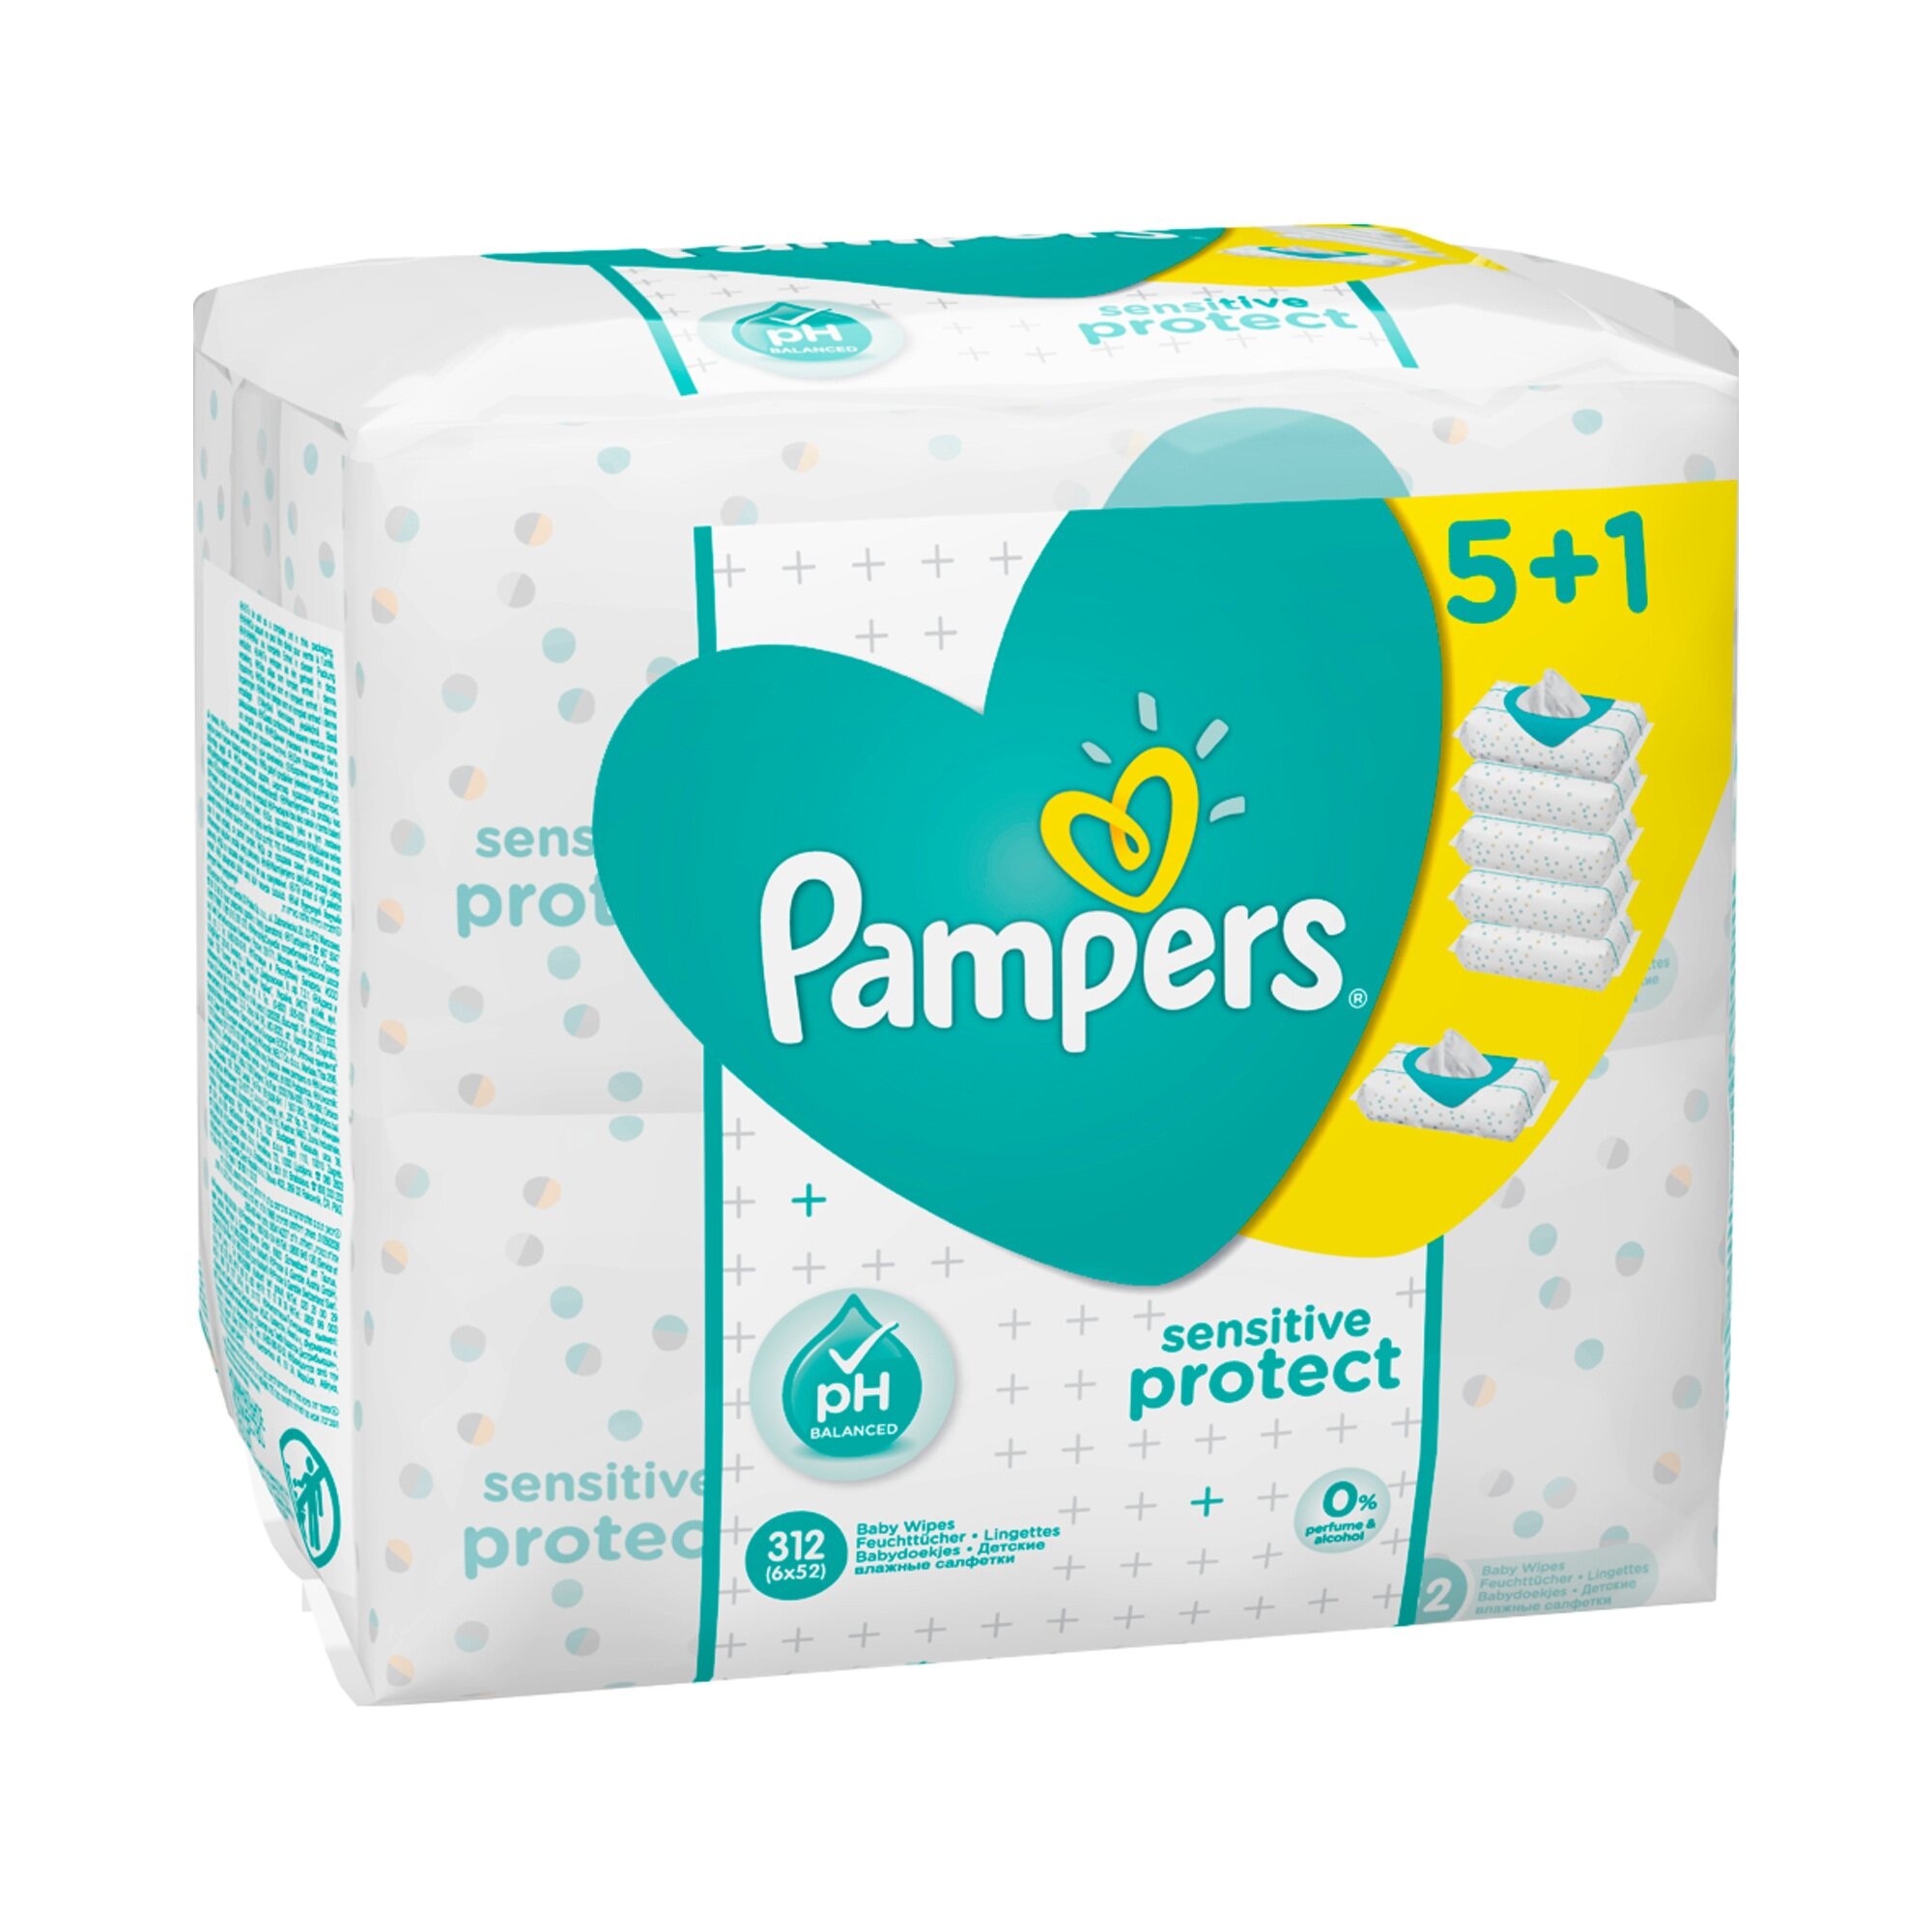 pampers-feuchttucher-sensitive-6er-pack-336-st-